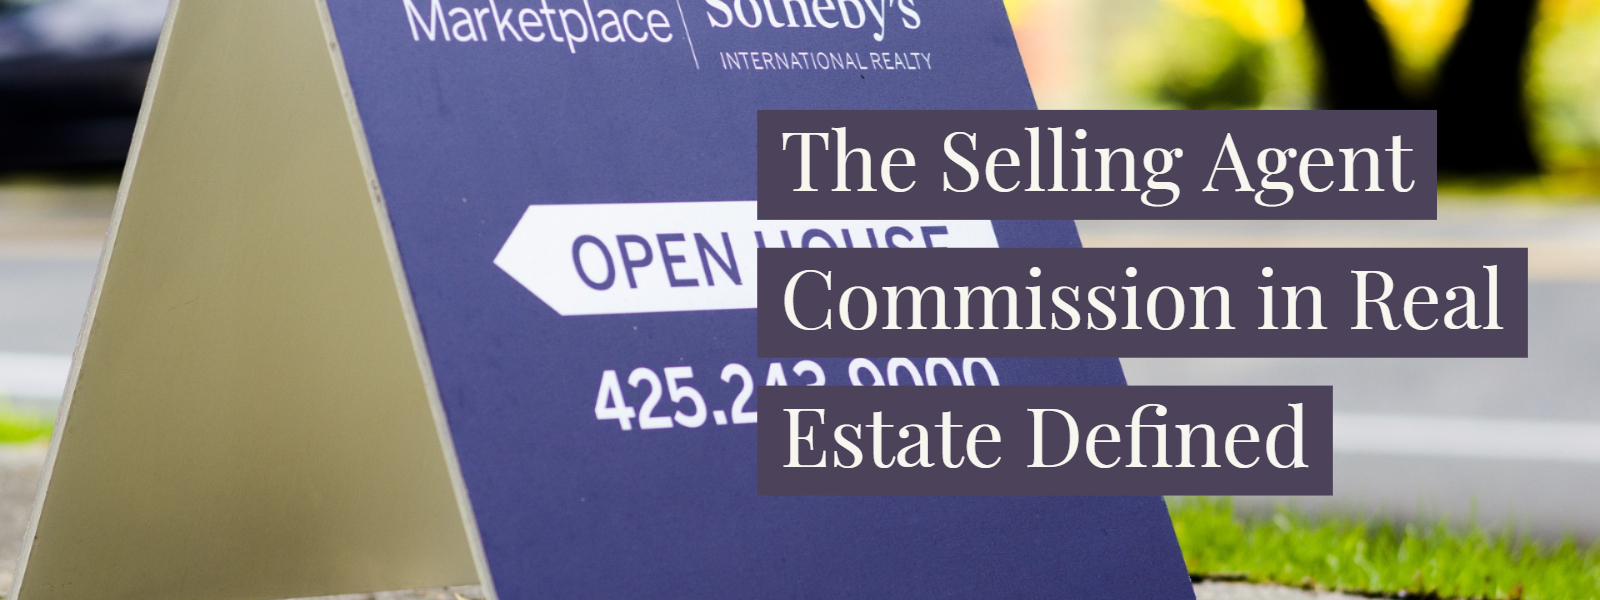 The Selling Agent Commission in Real Estate Defined